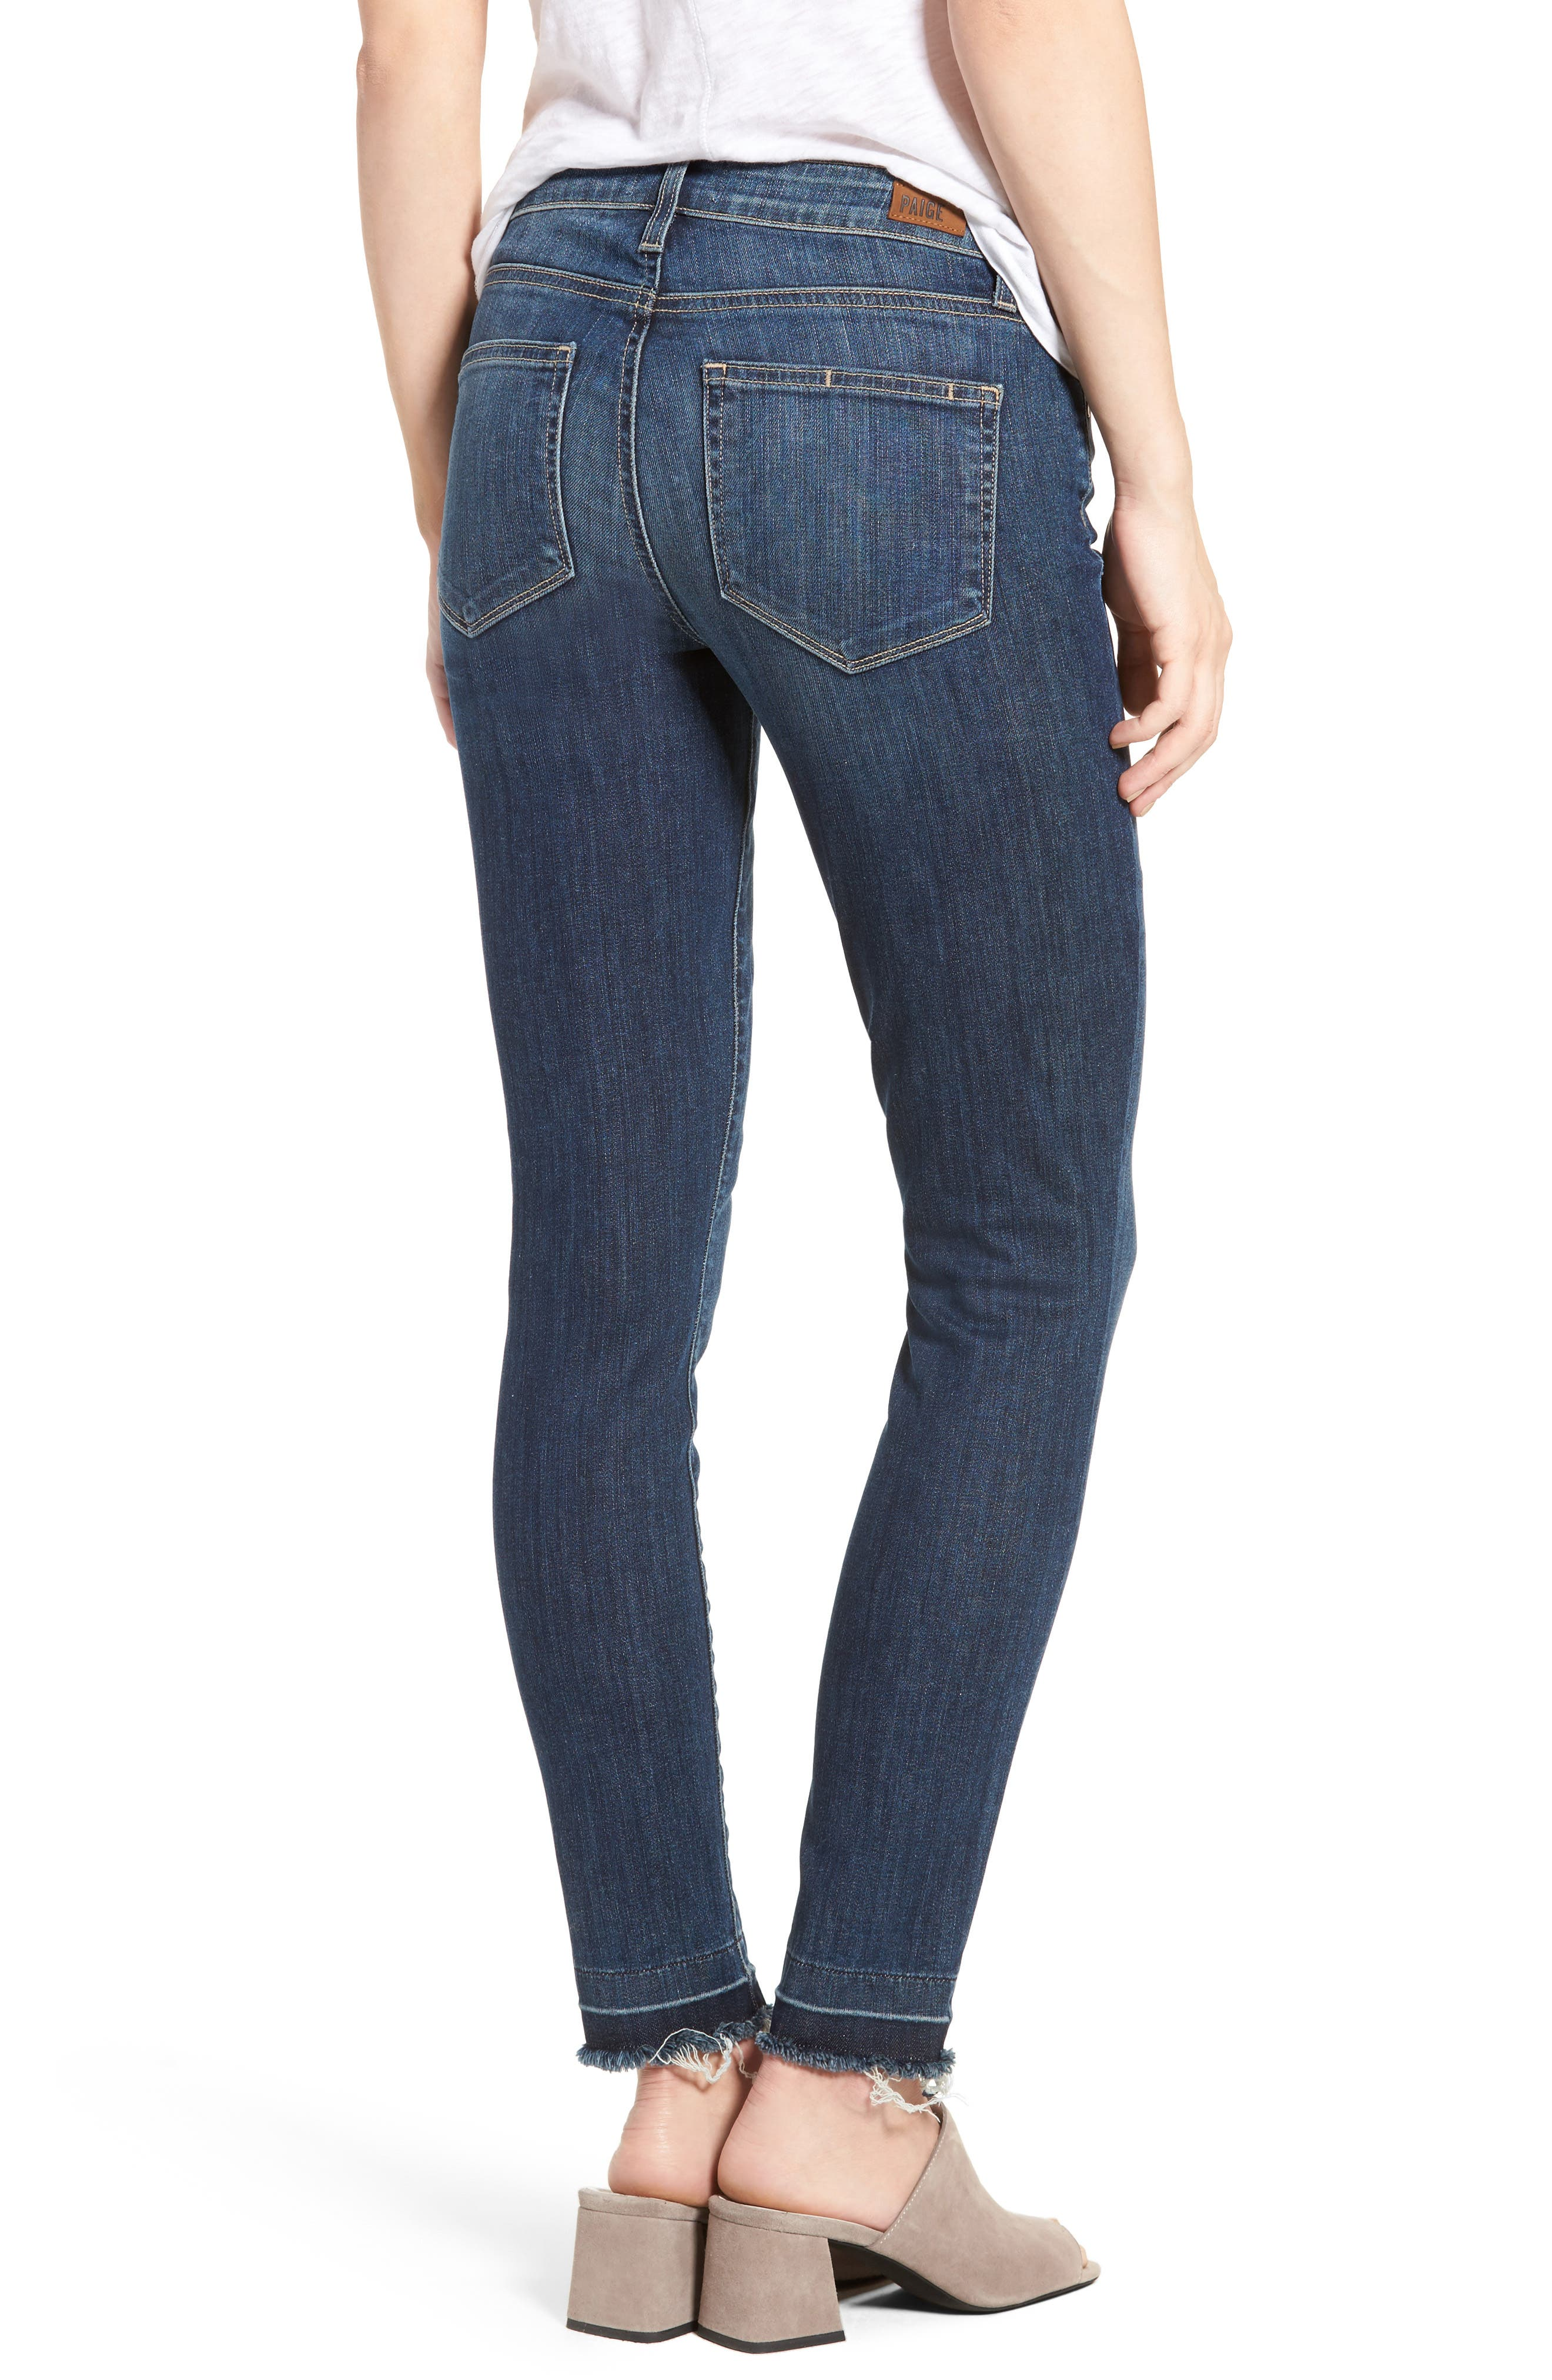 Legacy - Verdugo Ankle Ultra Skinny Jeans,                             Alternate thumbnail 2, color,                             400